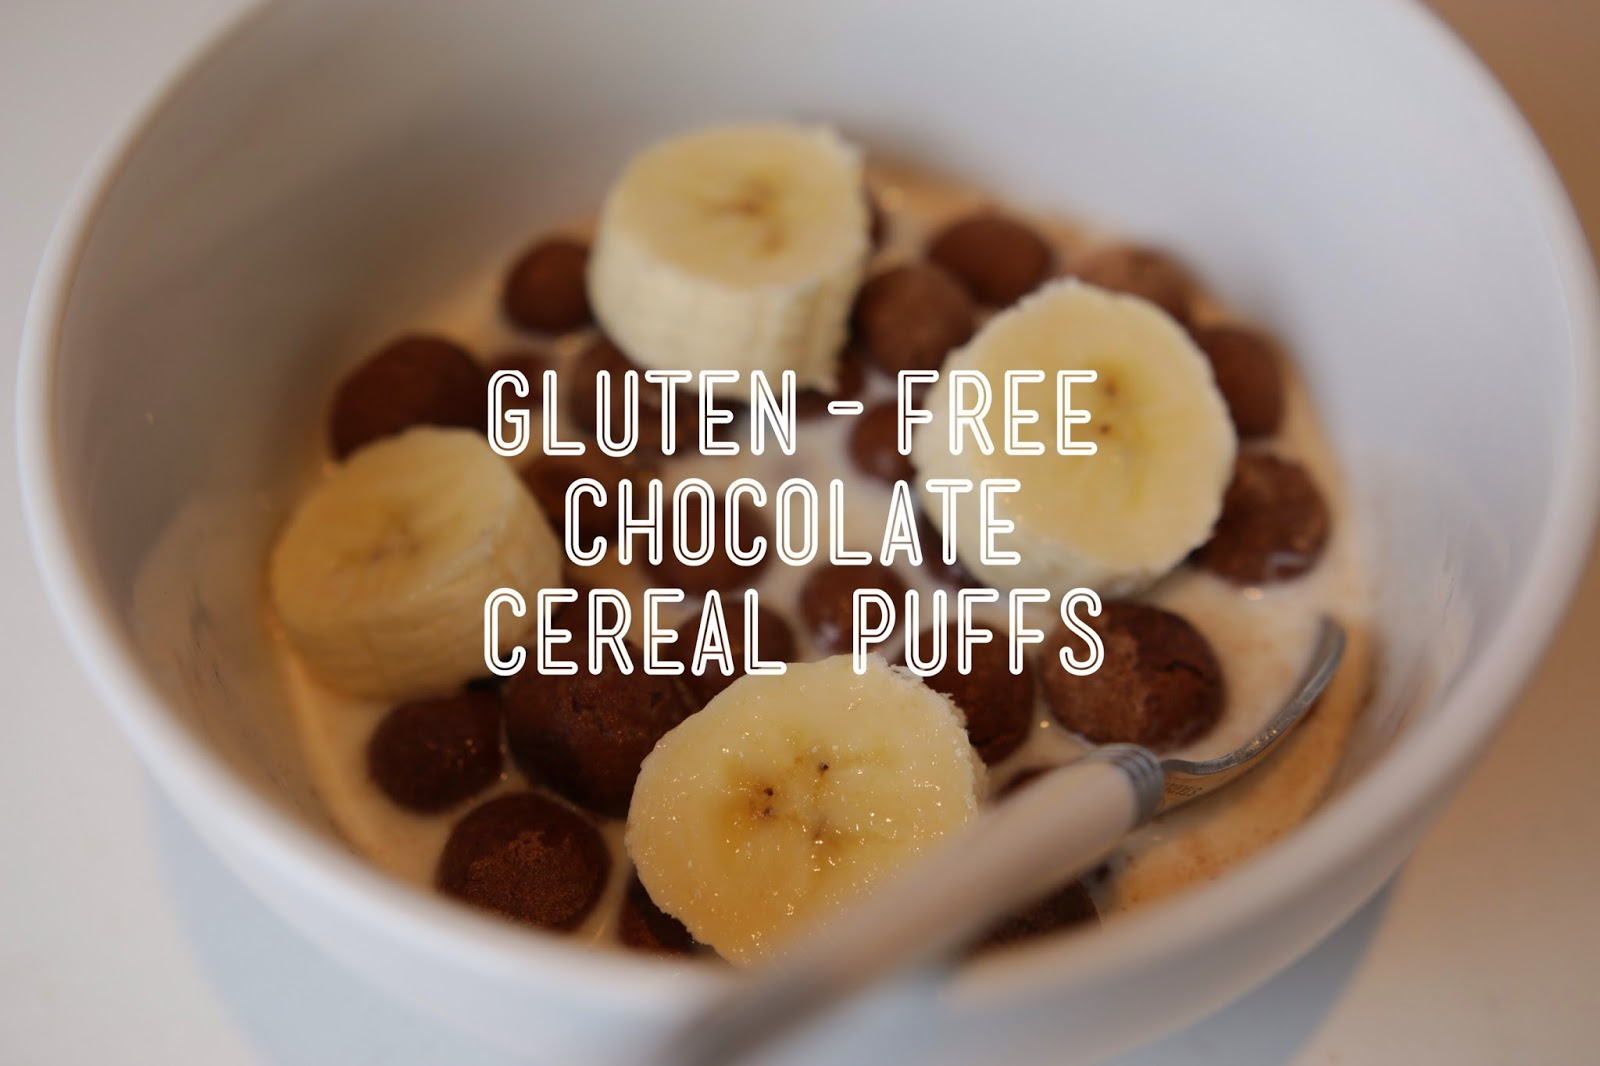 Gluten-free chocolate cereal puffs